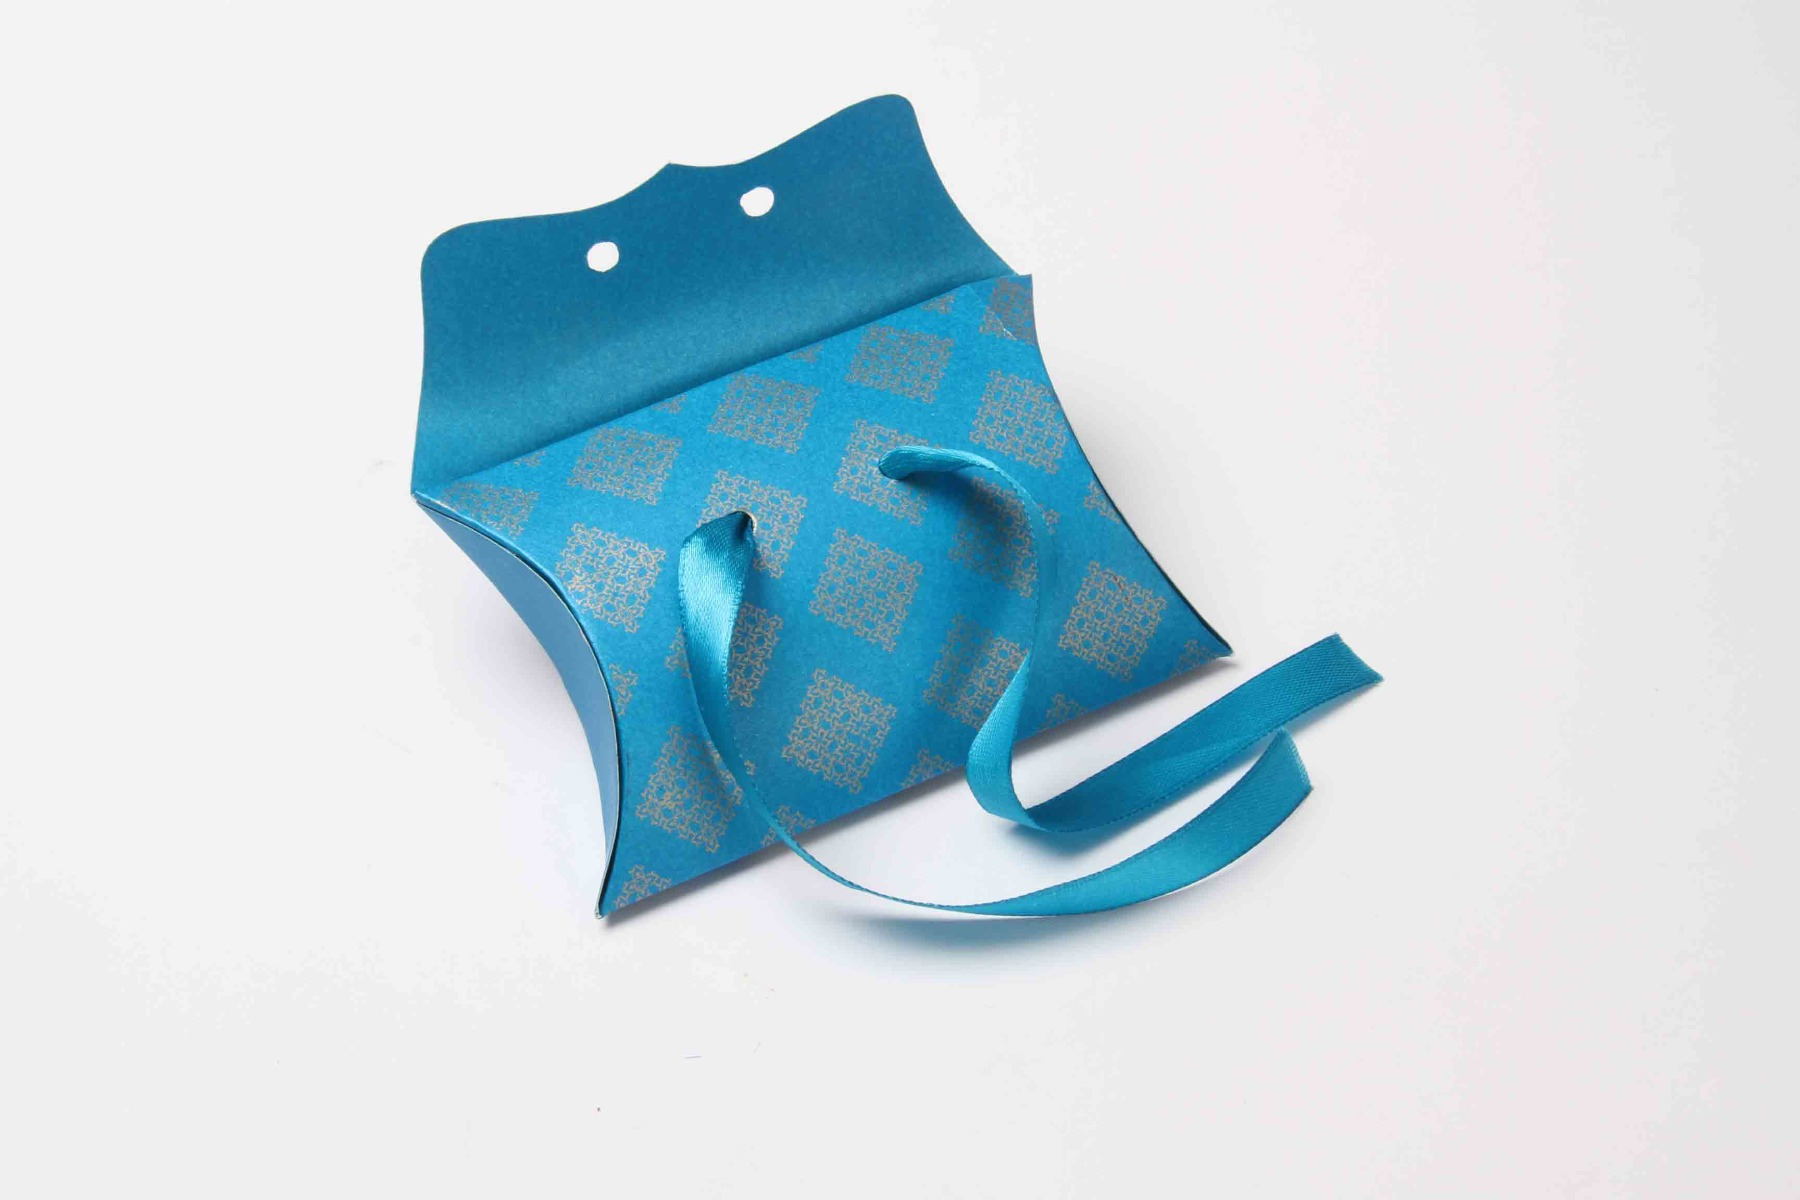 Pillow Favor Box No 9 - Firoze Blue-8658